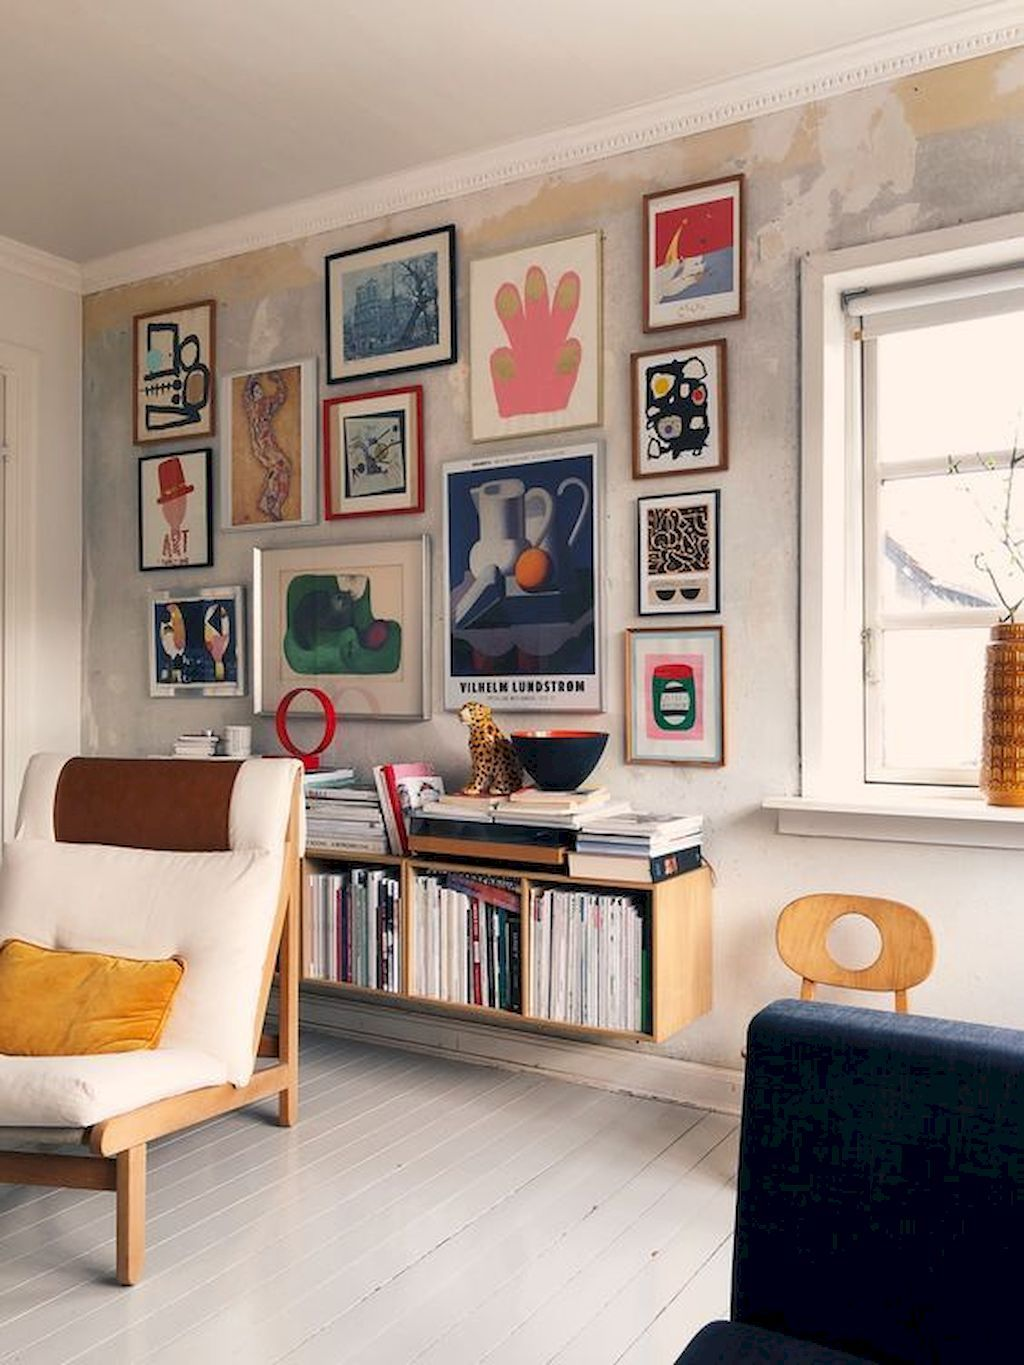 Cool creative ways to display art placement https hometoz home interior also design ideas living room small spaces decor in rh pinterest